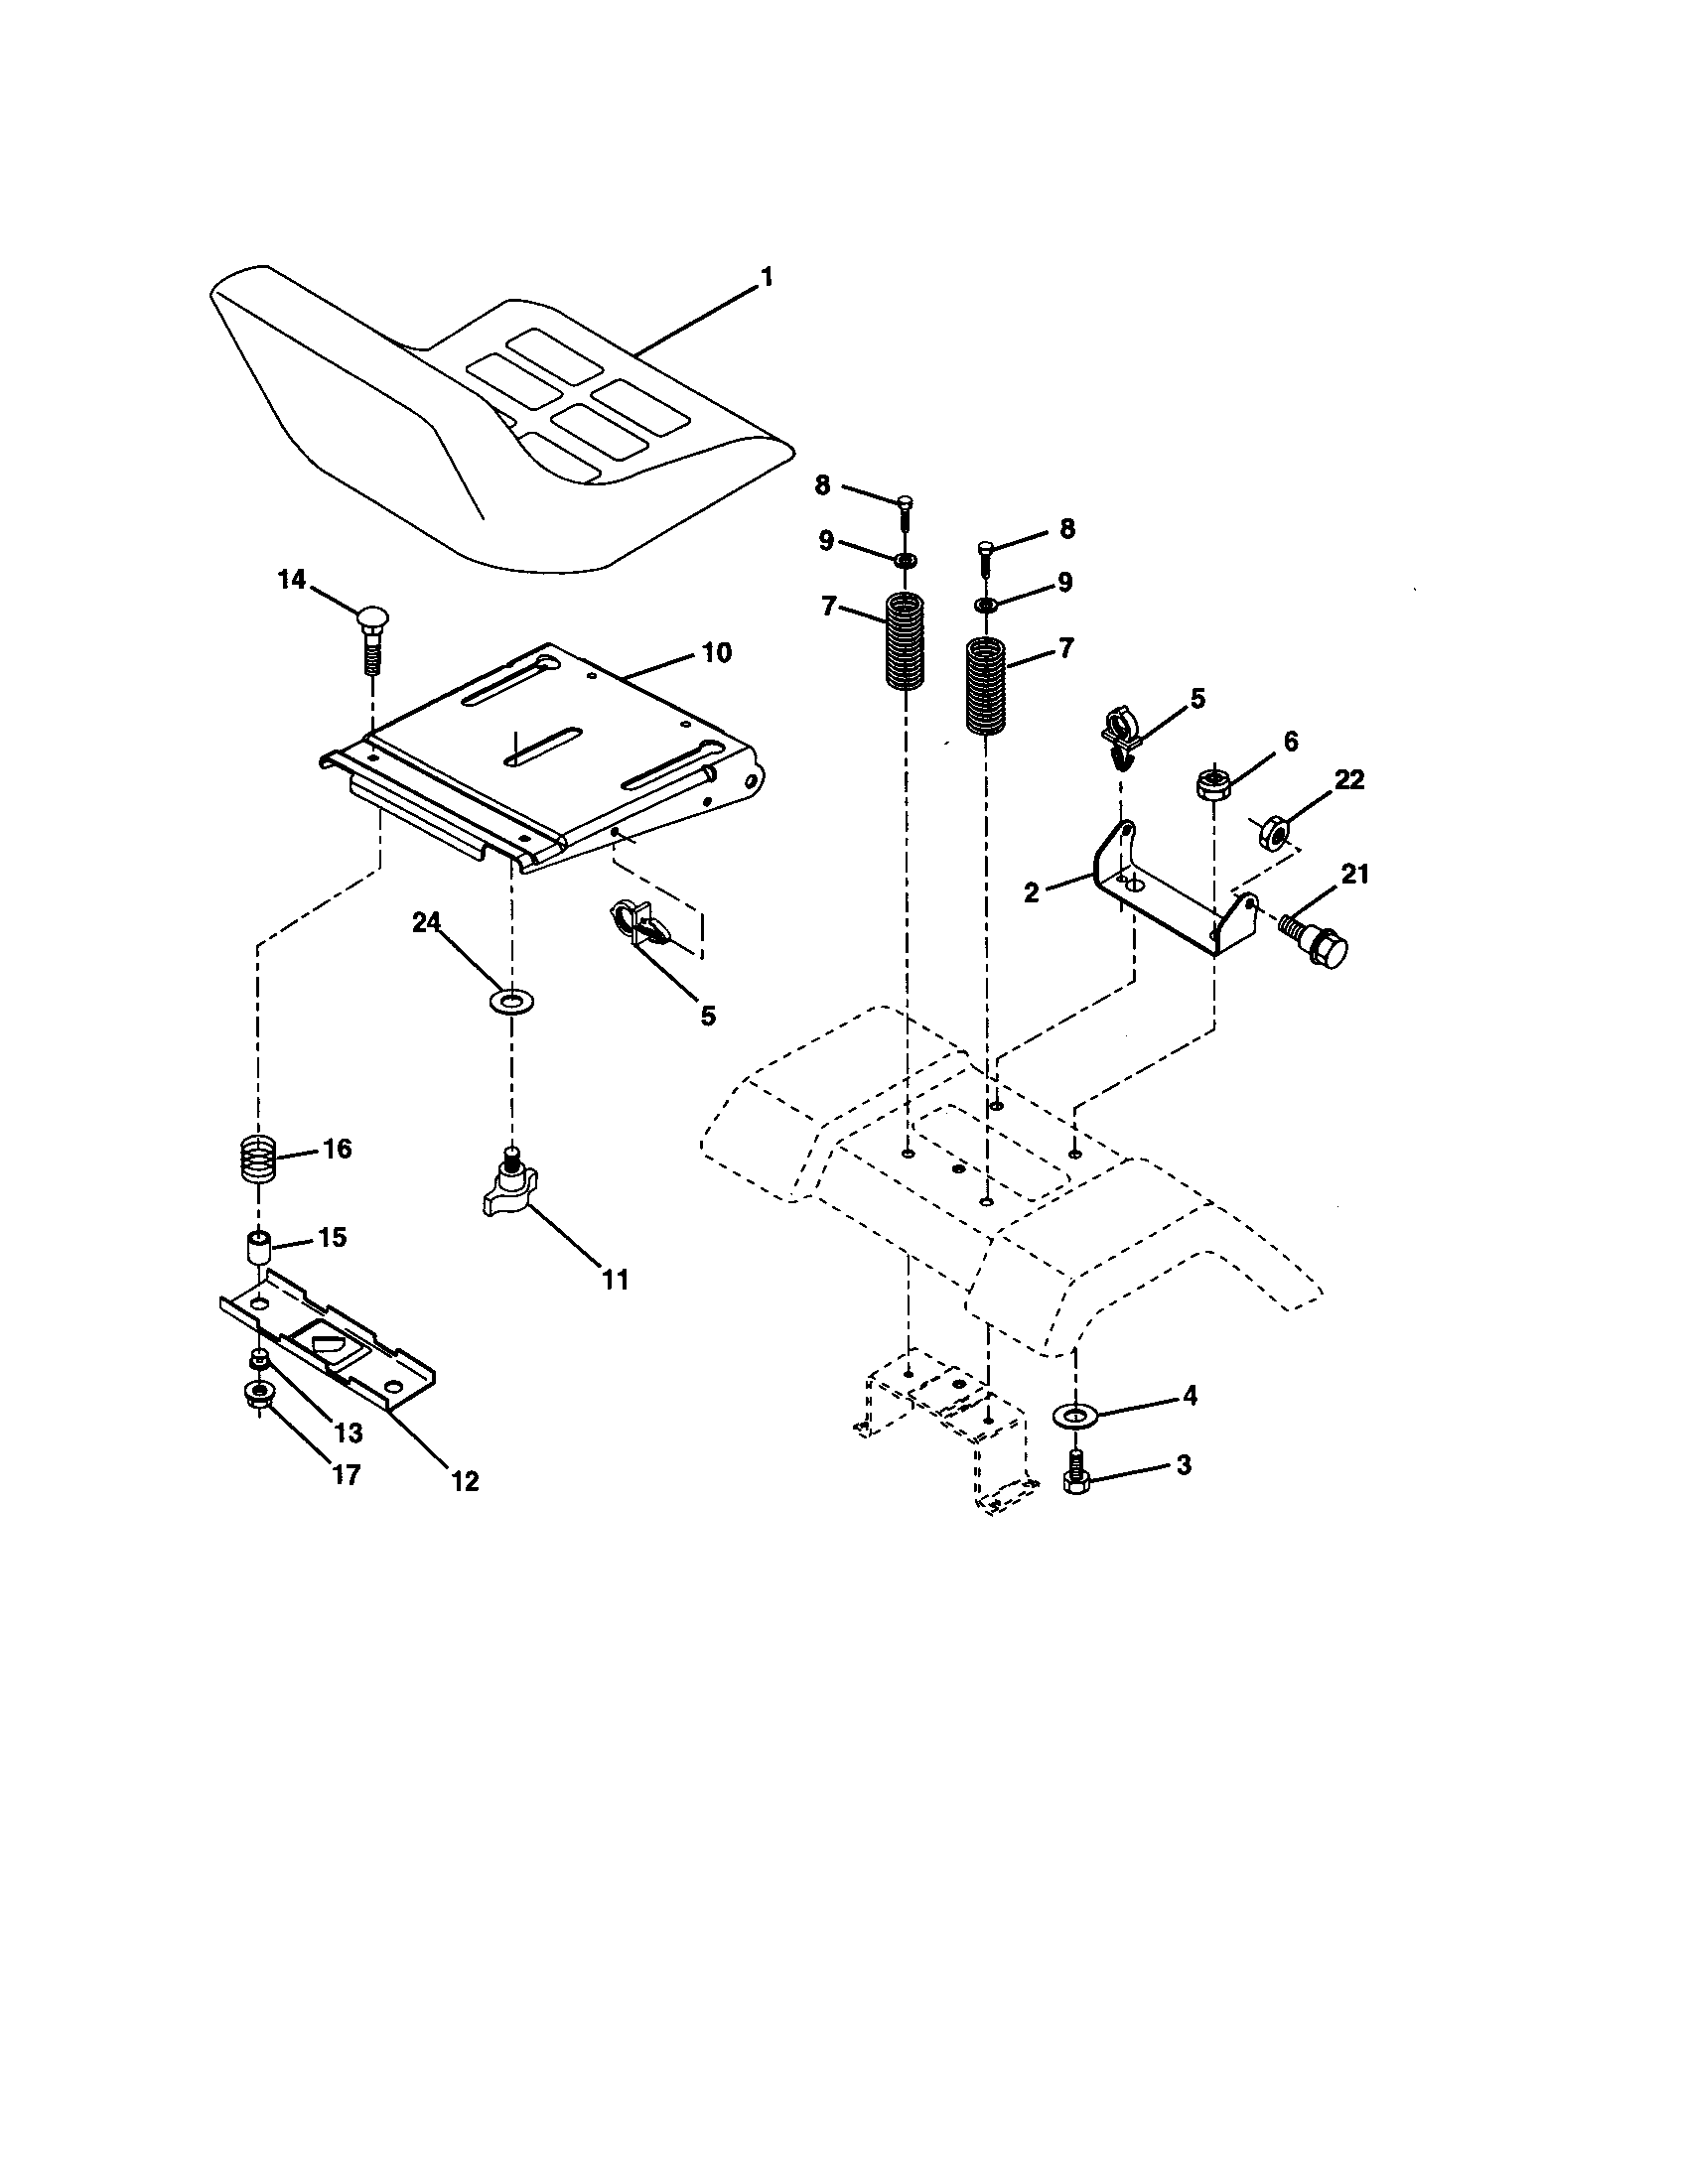 Craftsman 917278041 seat assembly diagram